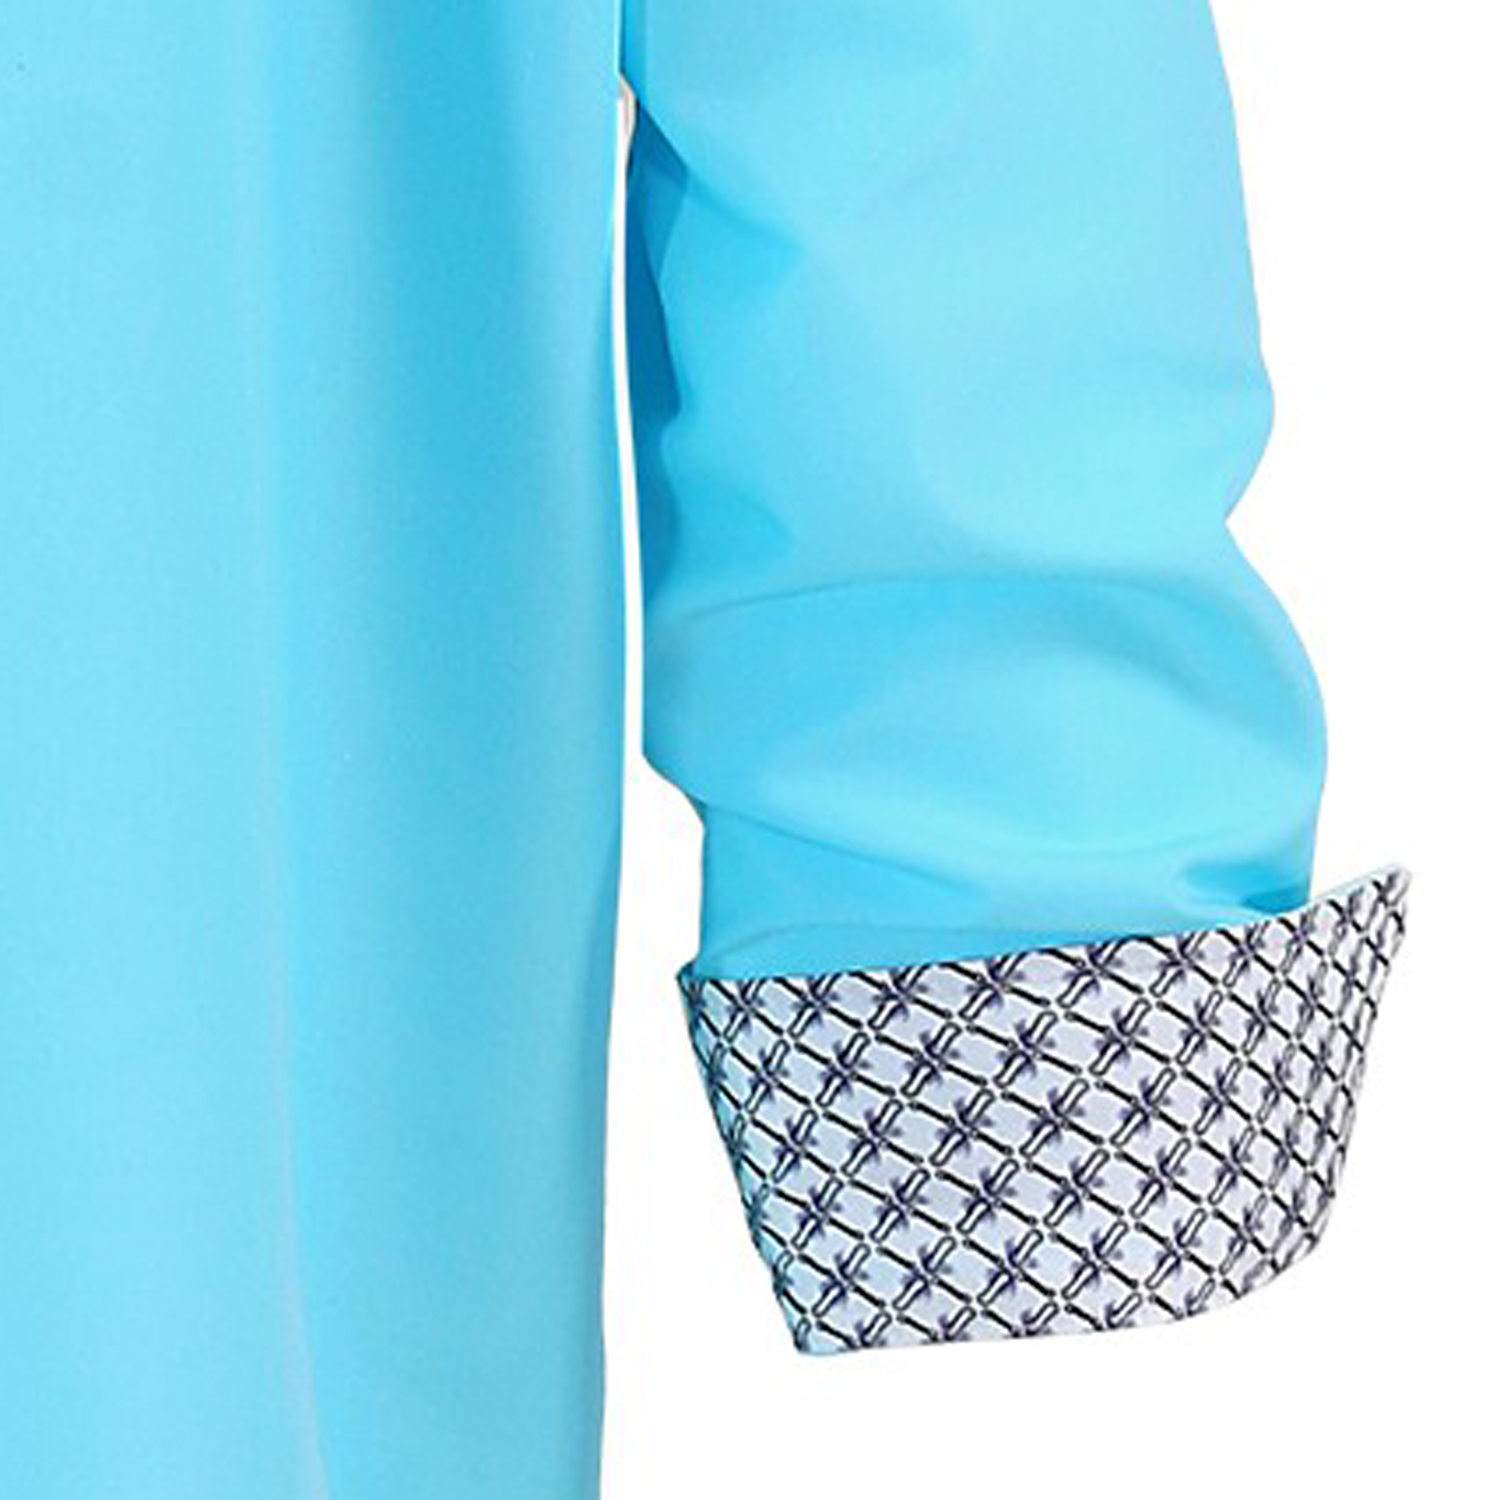 Detail Image to Shirt turquoise by Lavecchia, plus sizes up to 7XL